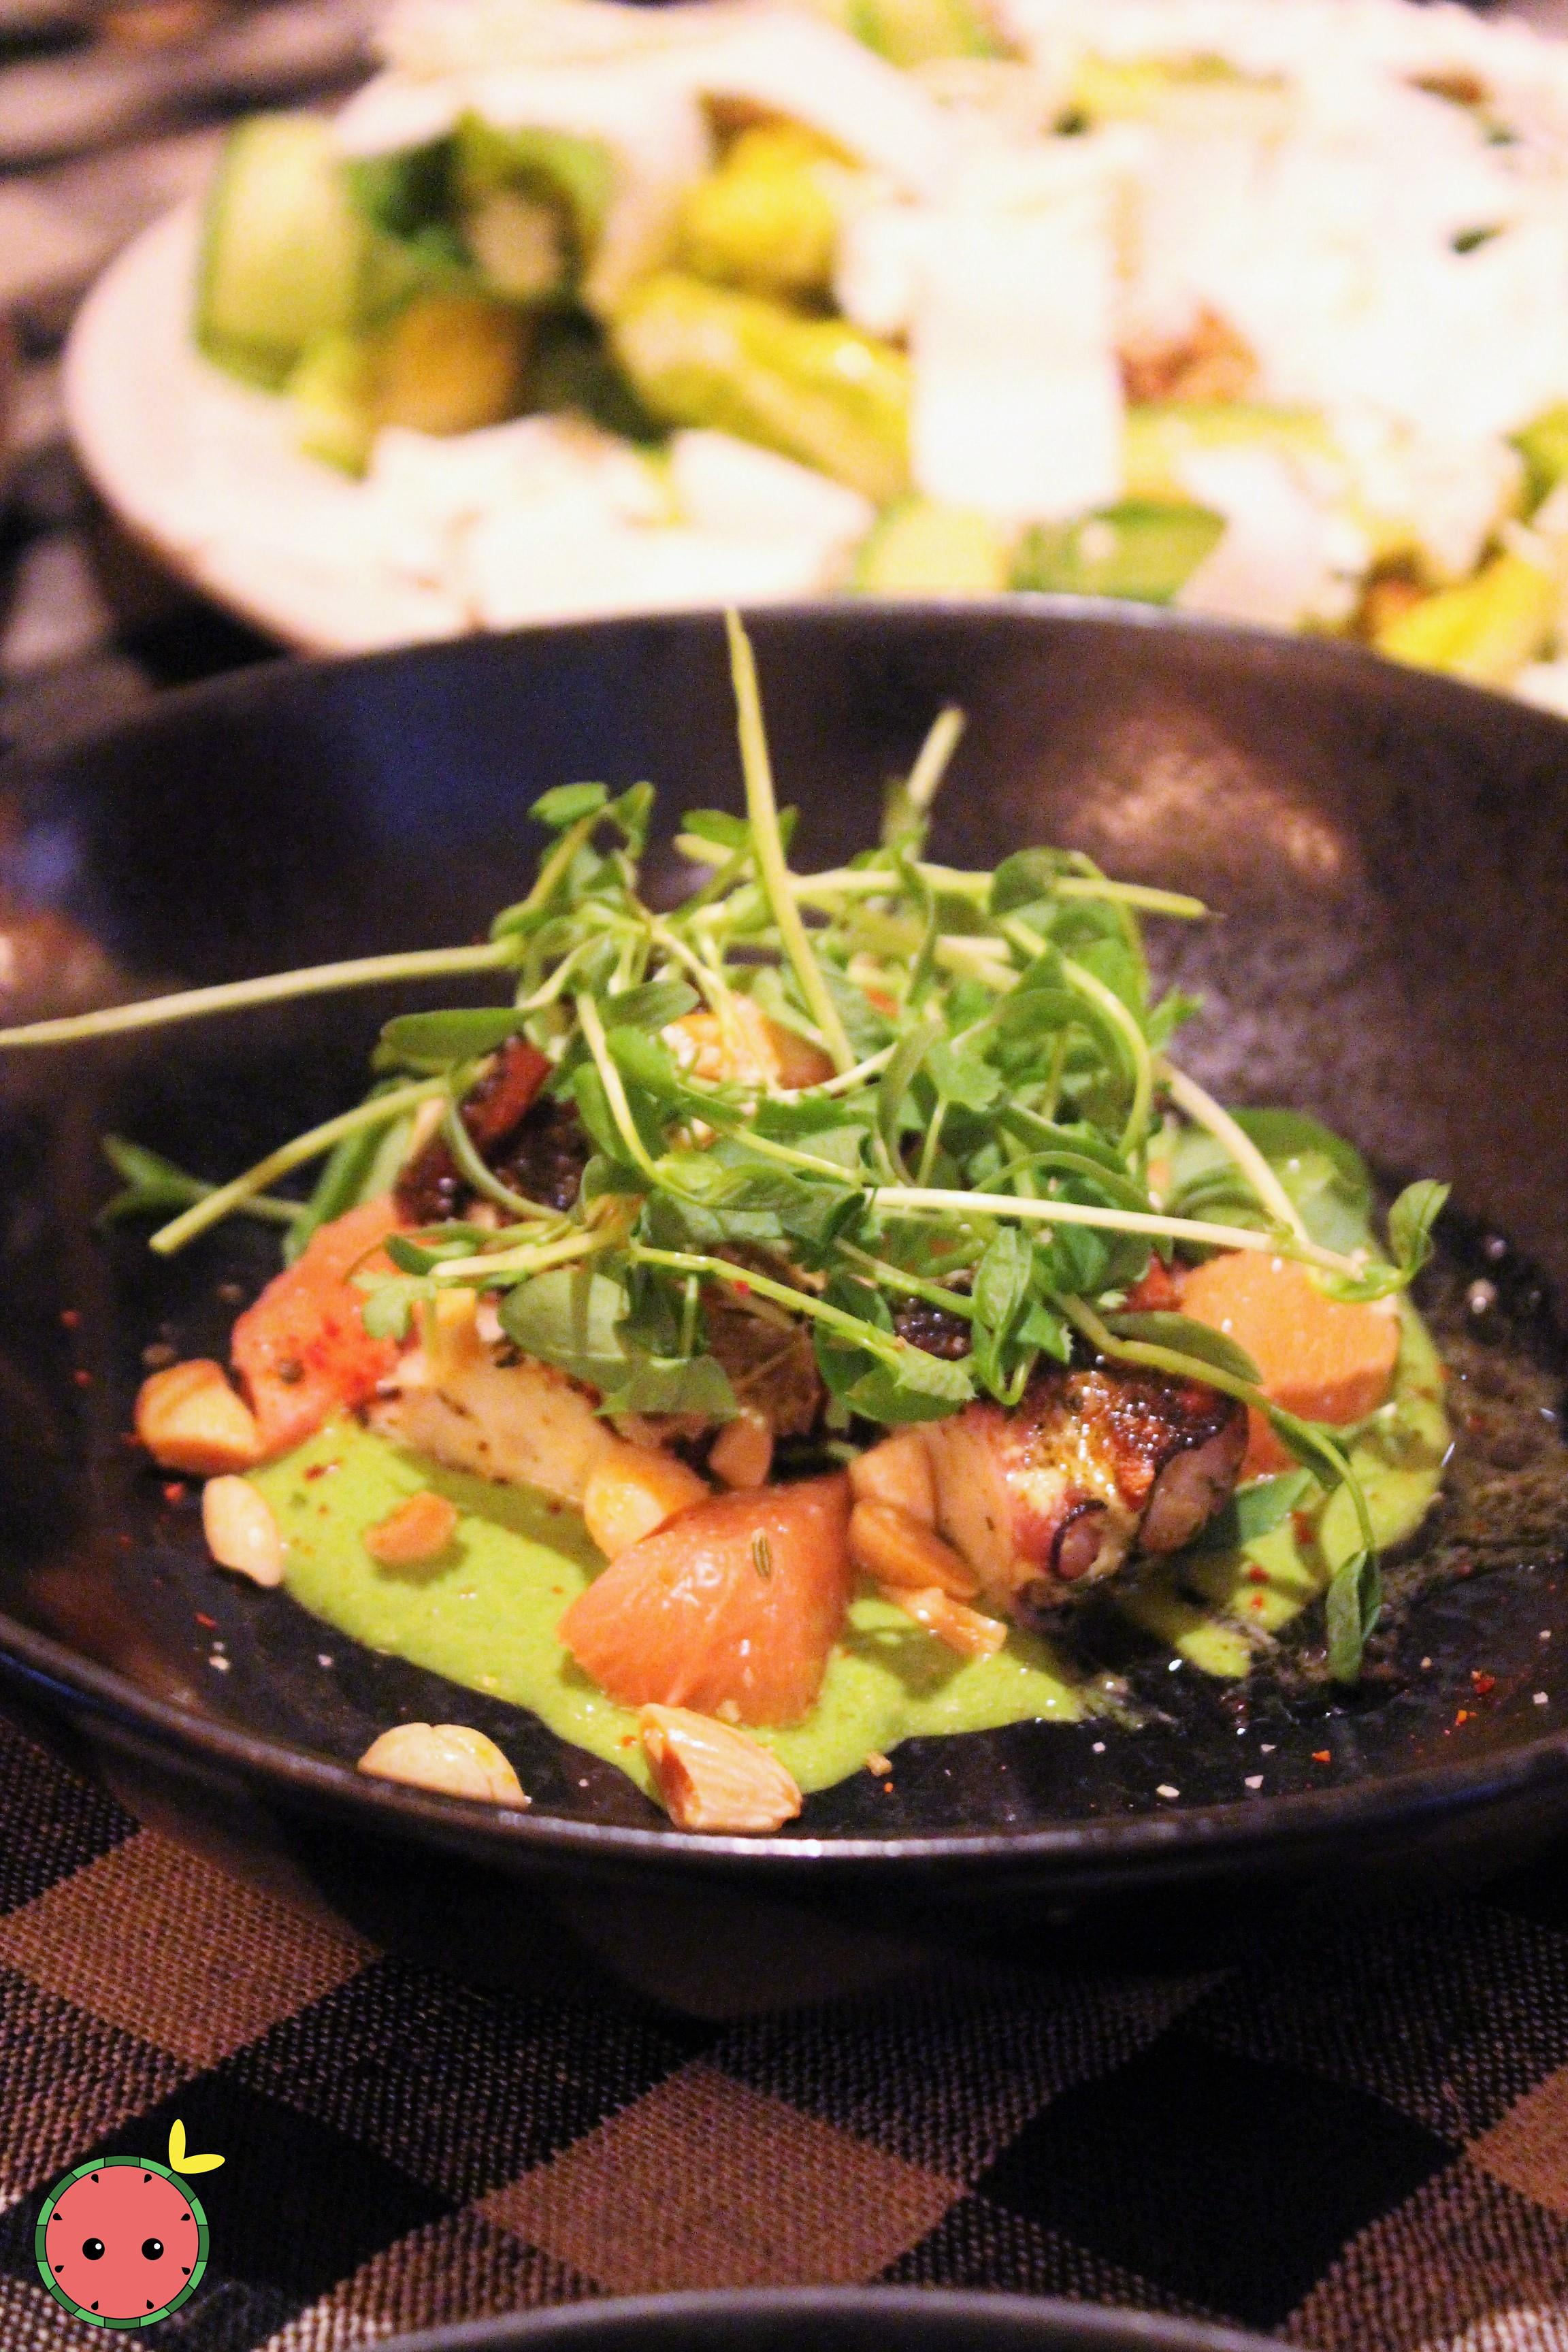 Seared Octopus - Cilantro-avocado pesto, calabrian chili & marcona almonds (1)